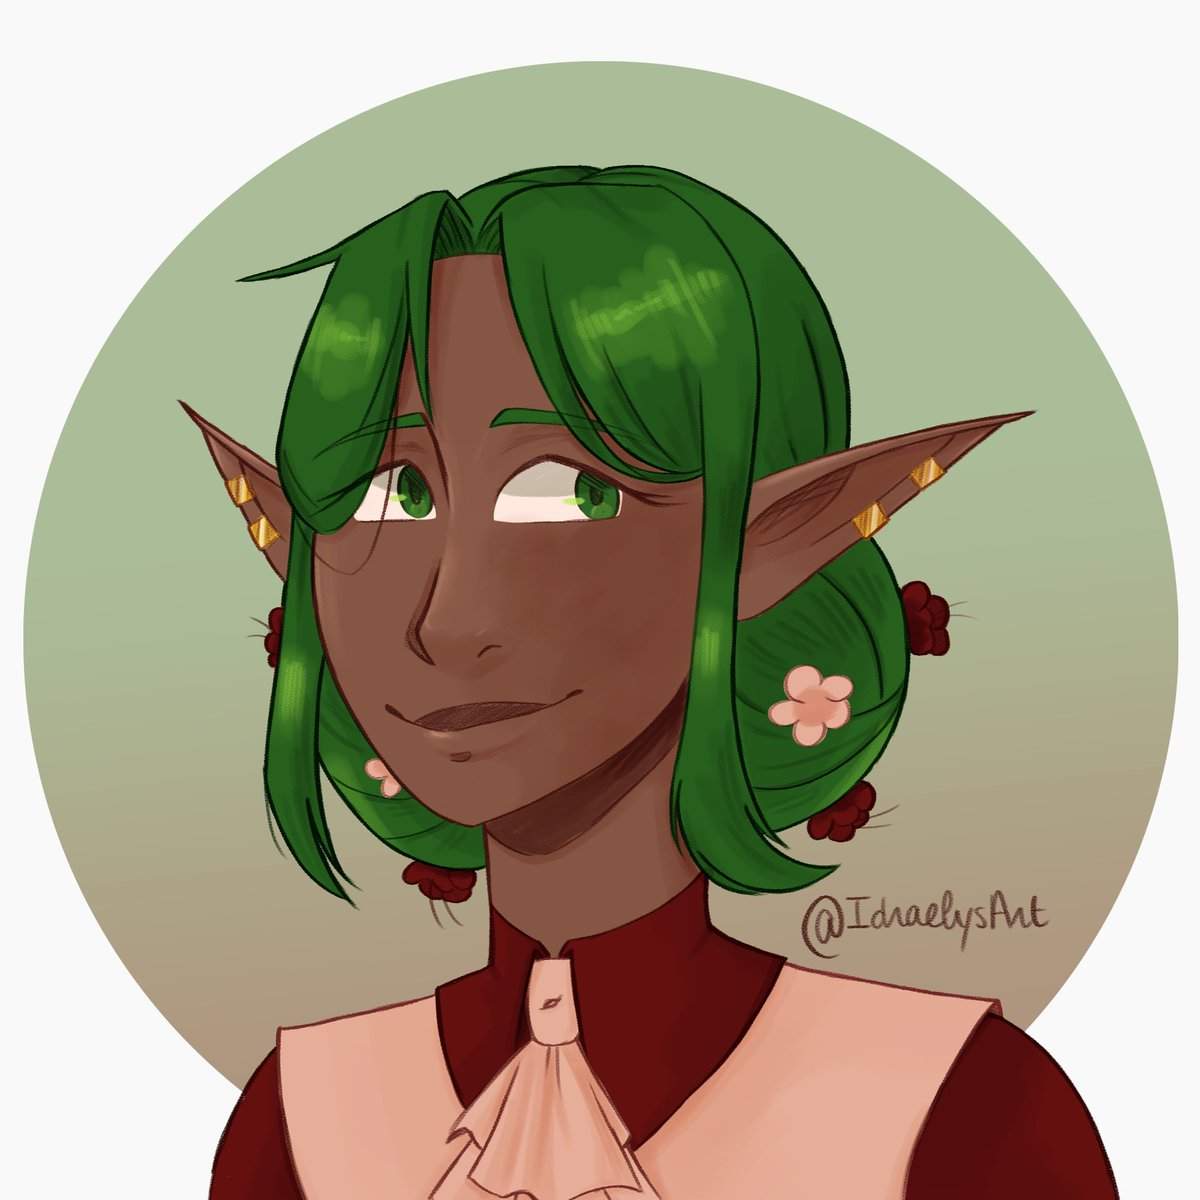 Gonna get to play again as Wisamirelle as we stopped playing the game she originated from last summer! Made some minor changes on her design as well as a new token because the old one was... meh  #DnD #DnDcharacter #dndartists #dndtoken